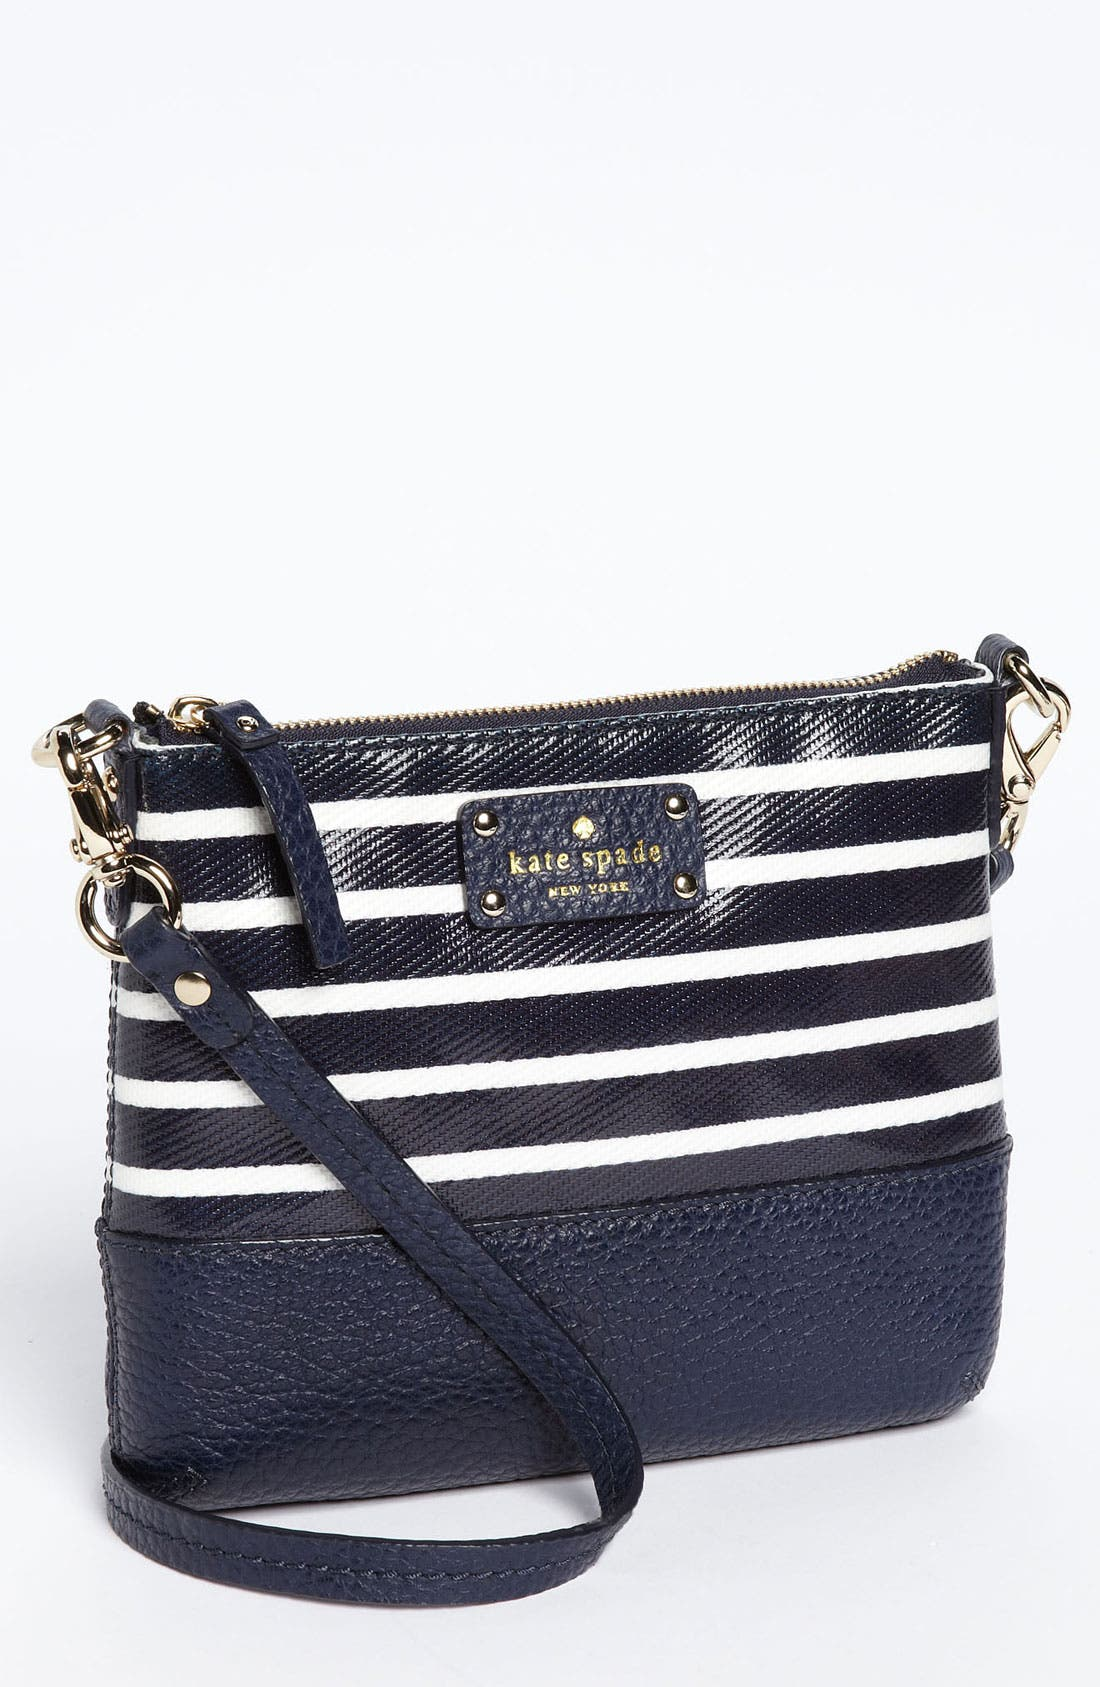 Alternate Image 1 Selected - kate spade new york 'grove court - tenley' crossbody bag